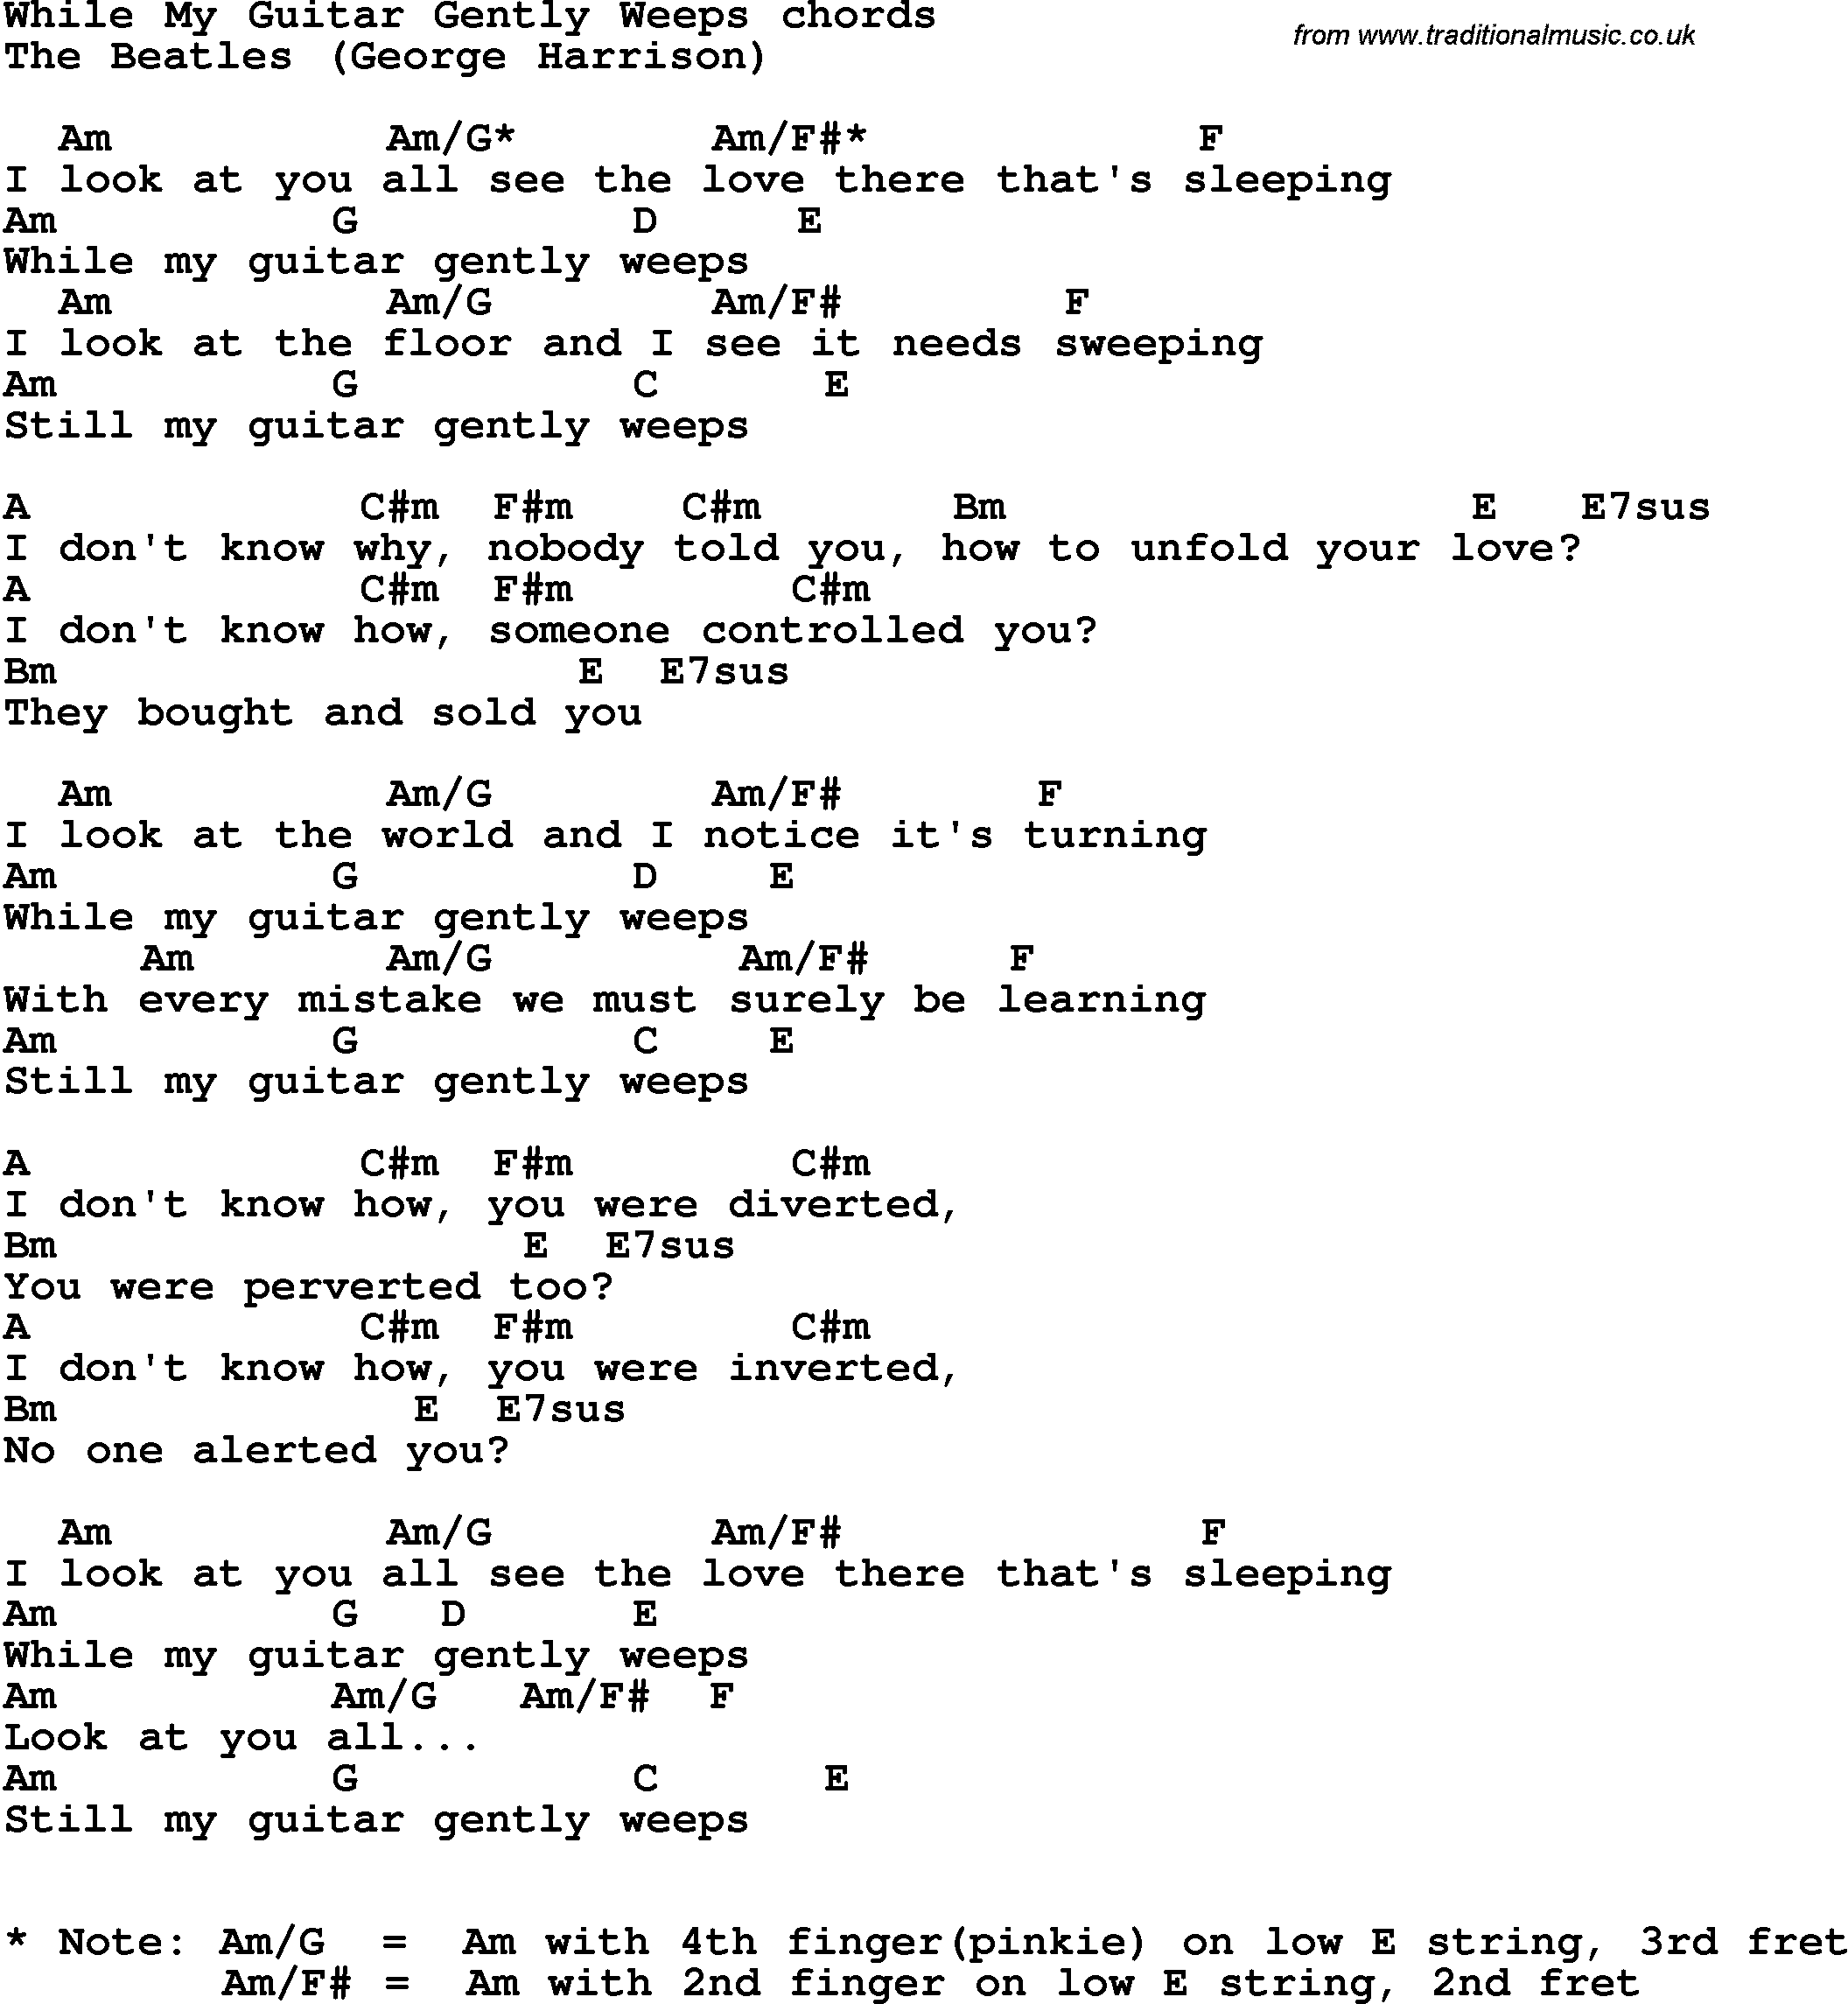 Song Lyrics With Guitar Chords For While My Guitar Gently Weeps